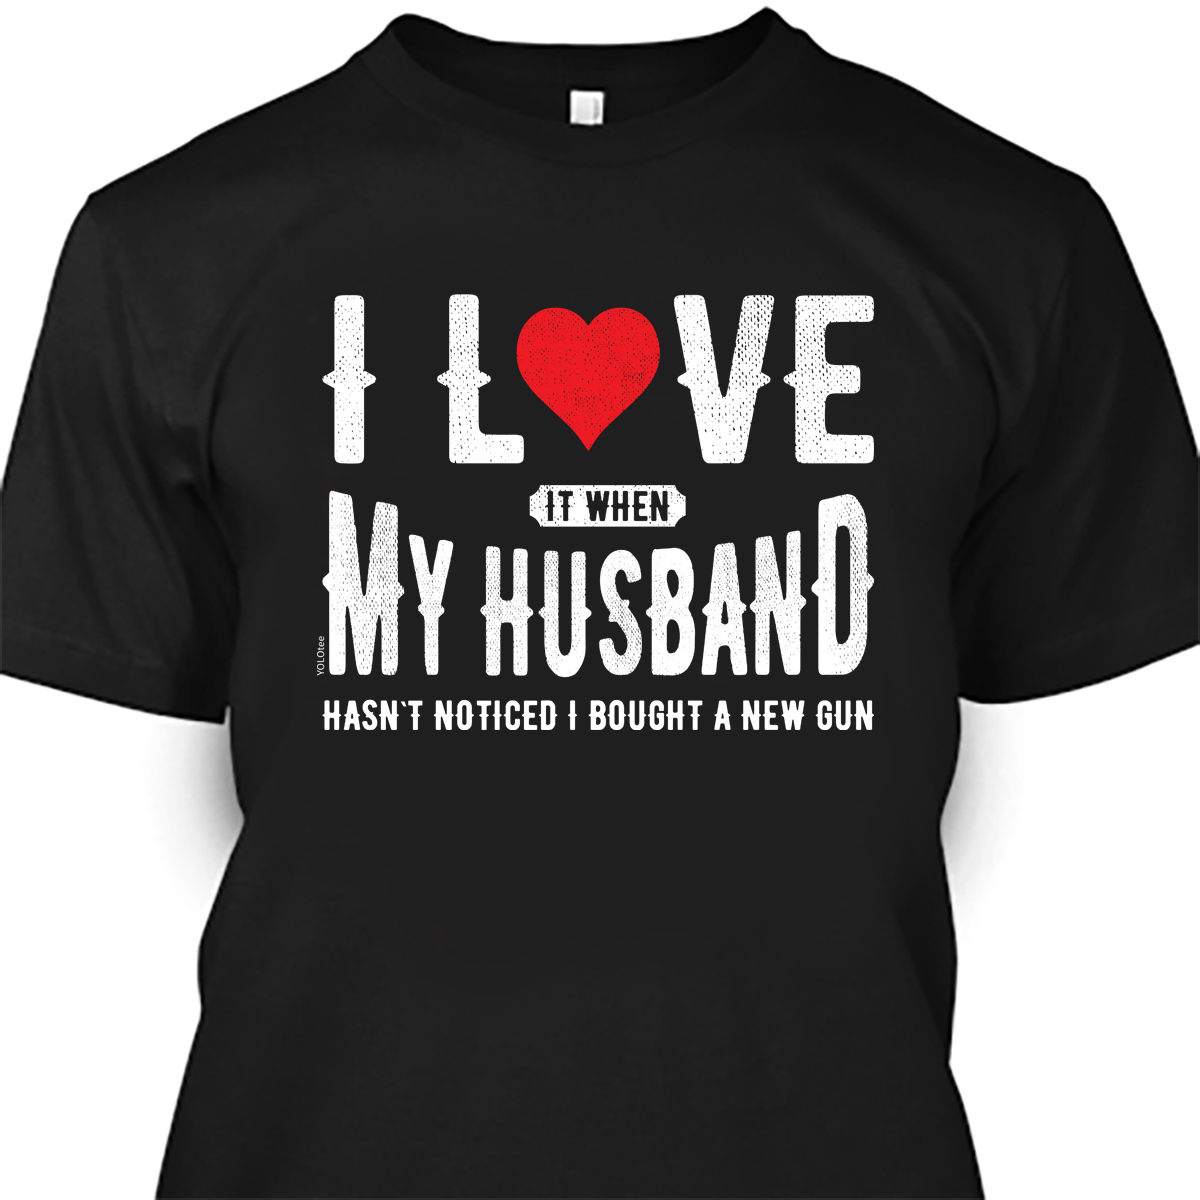 I Love My Husband - Gun Shirt